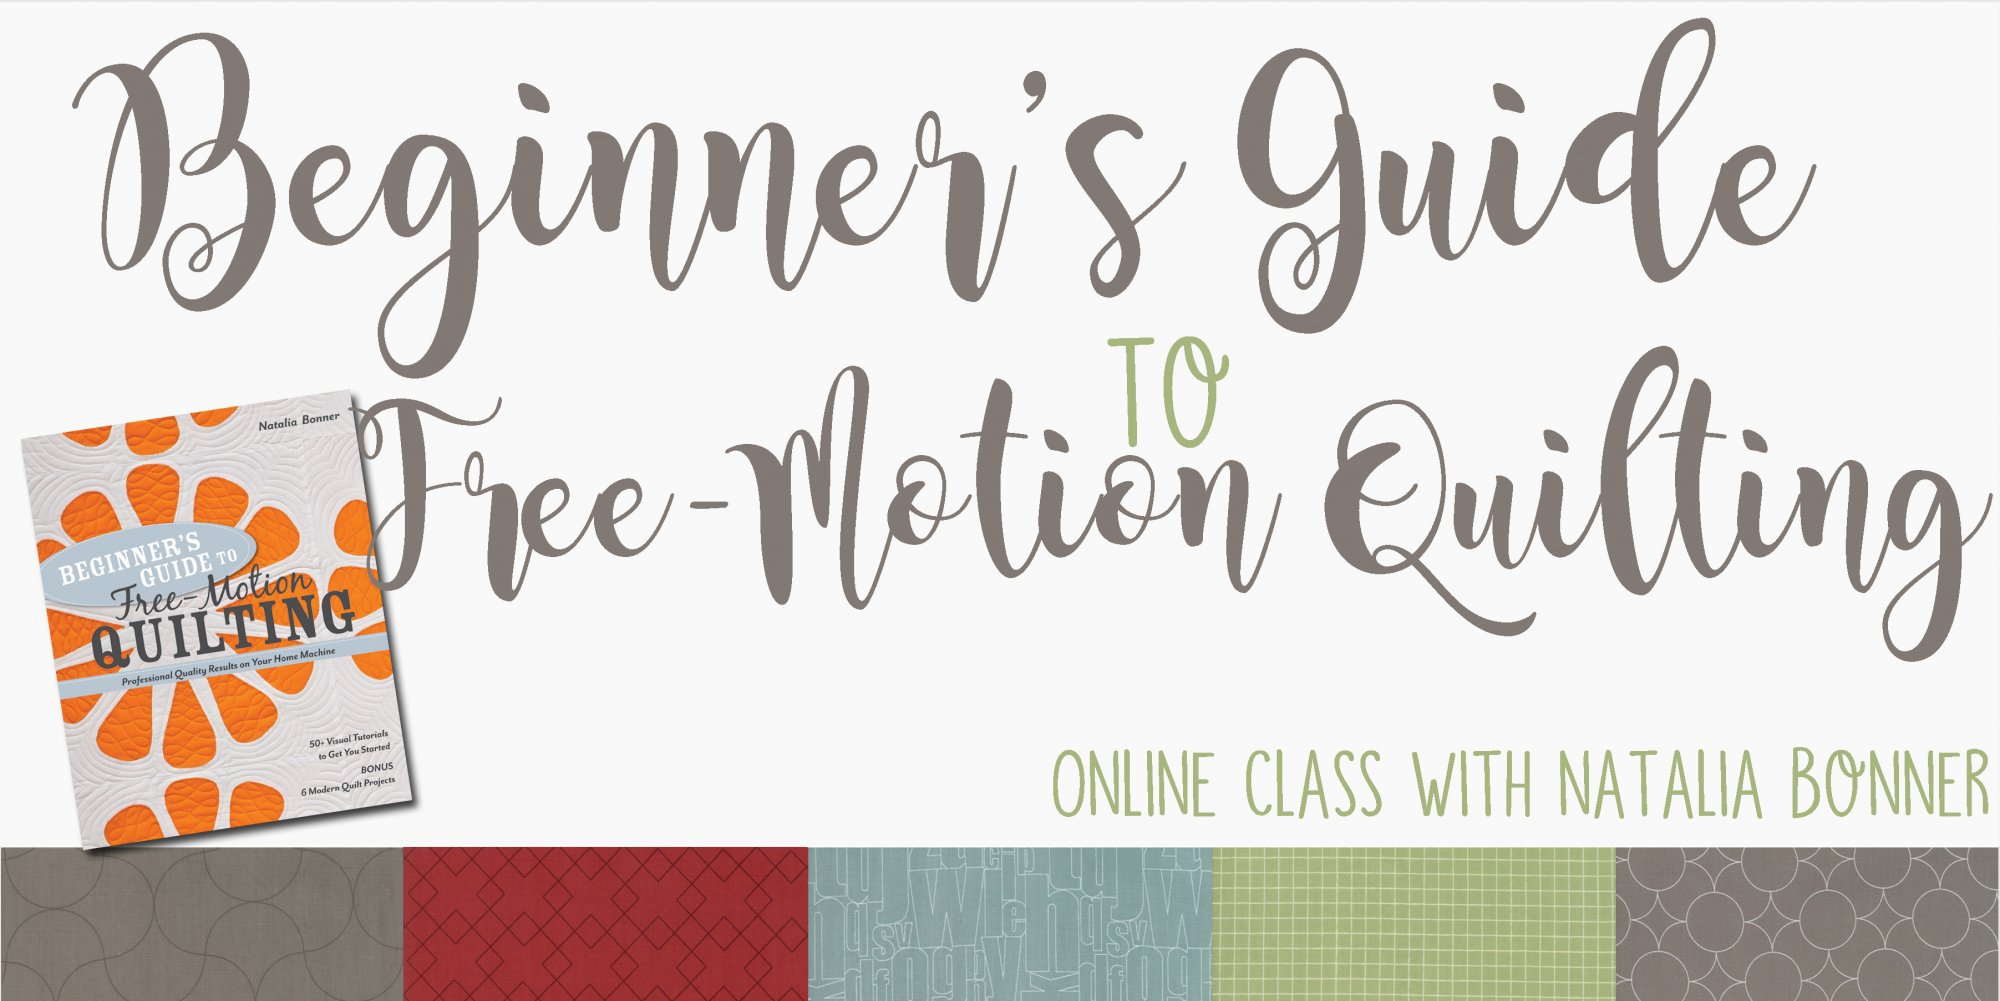 Beginner's Guide to Free-Motion Quilting -  Online Class with Natalia Bonner